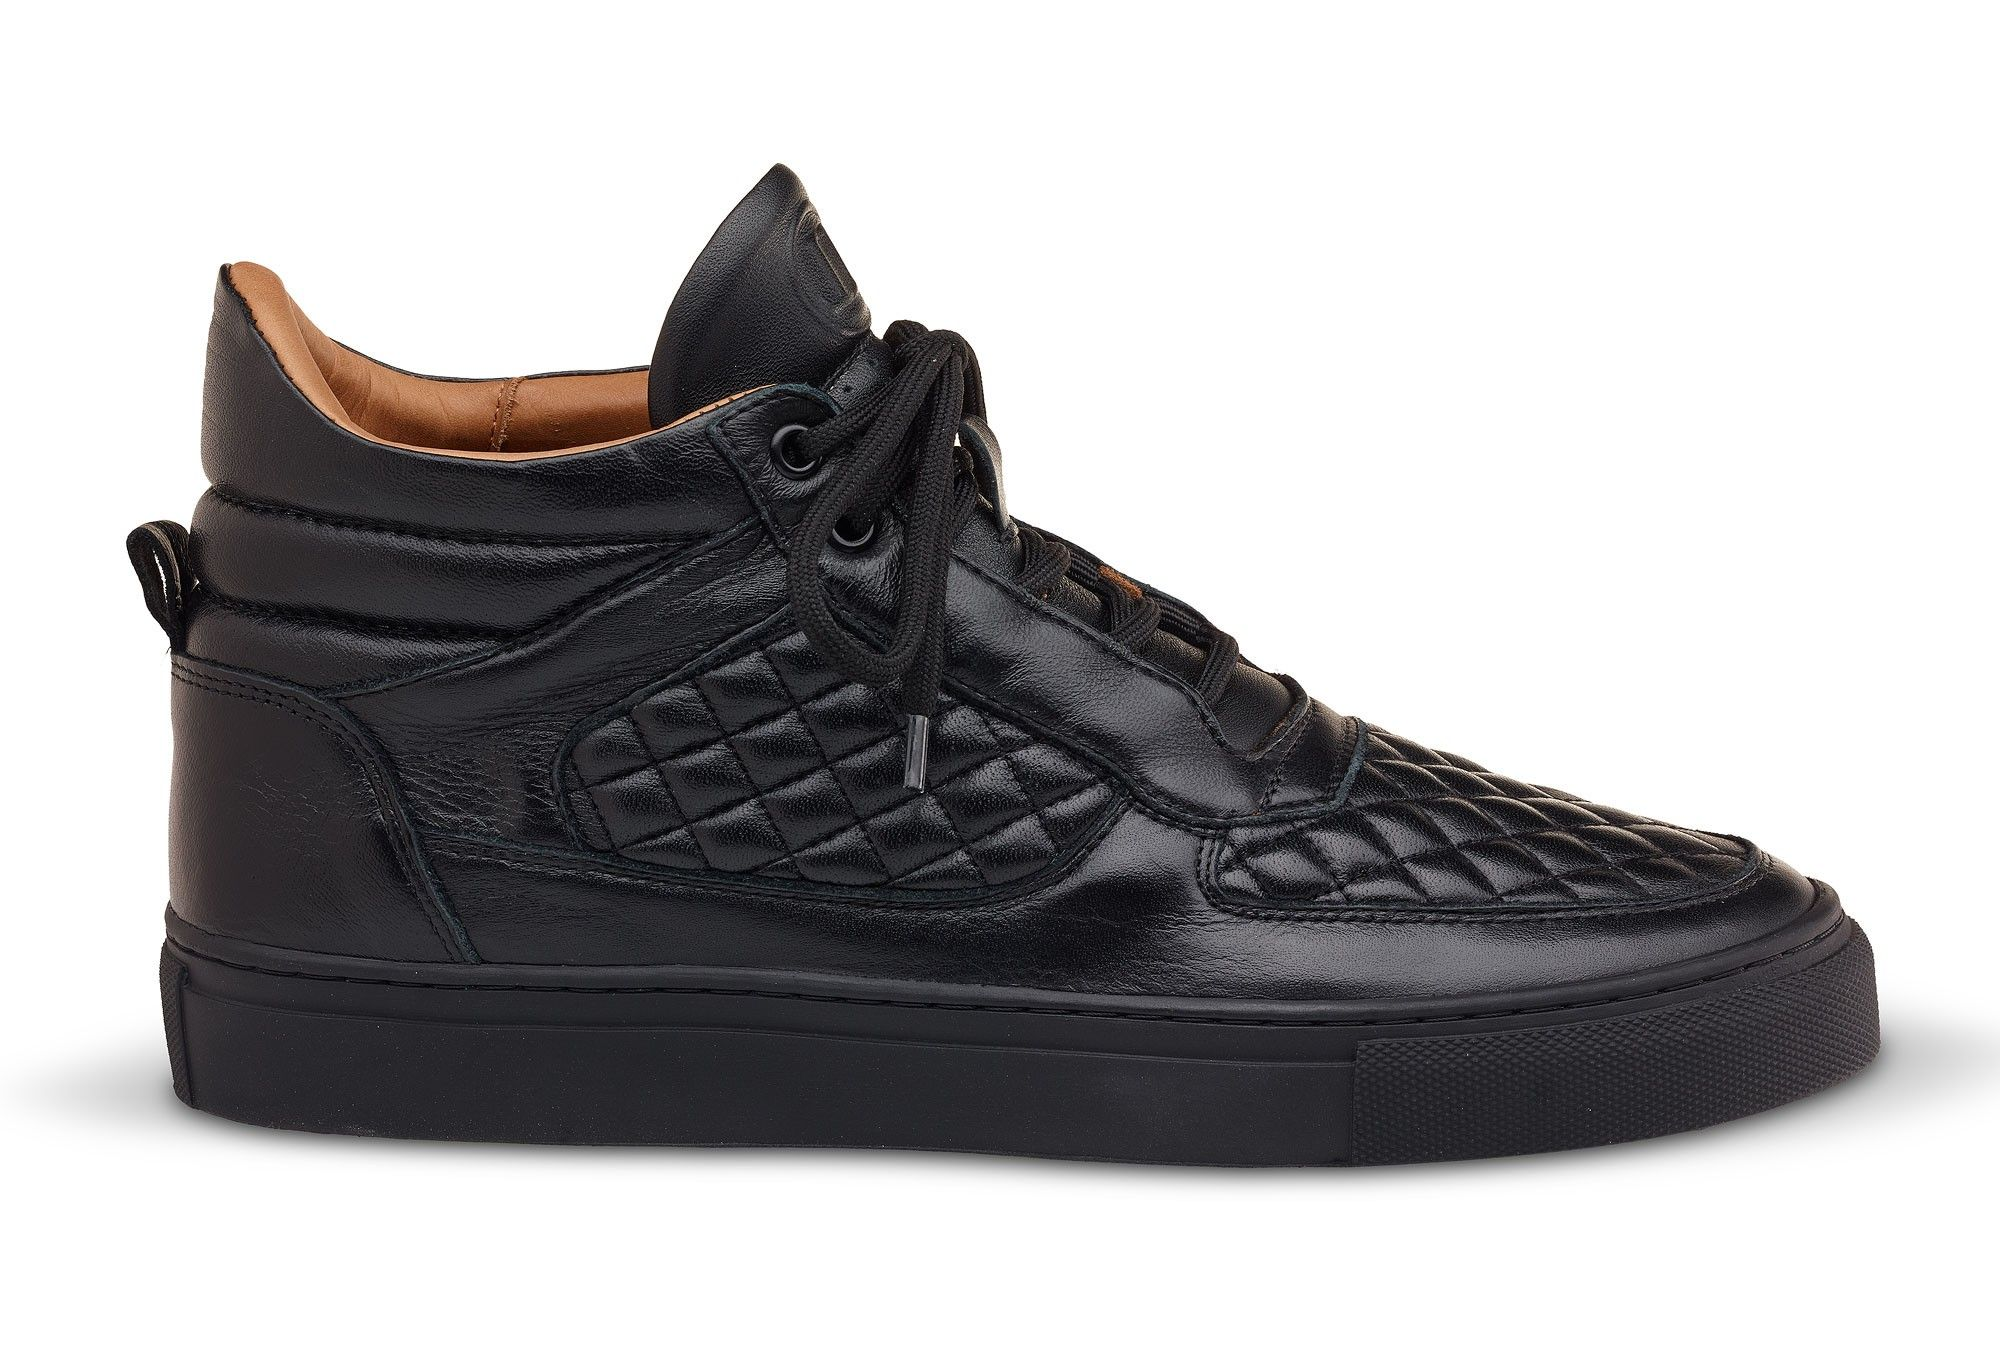 Leandro Lopes - Mid Top - Faisca - Black